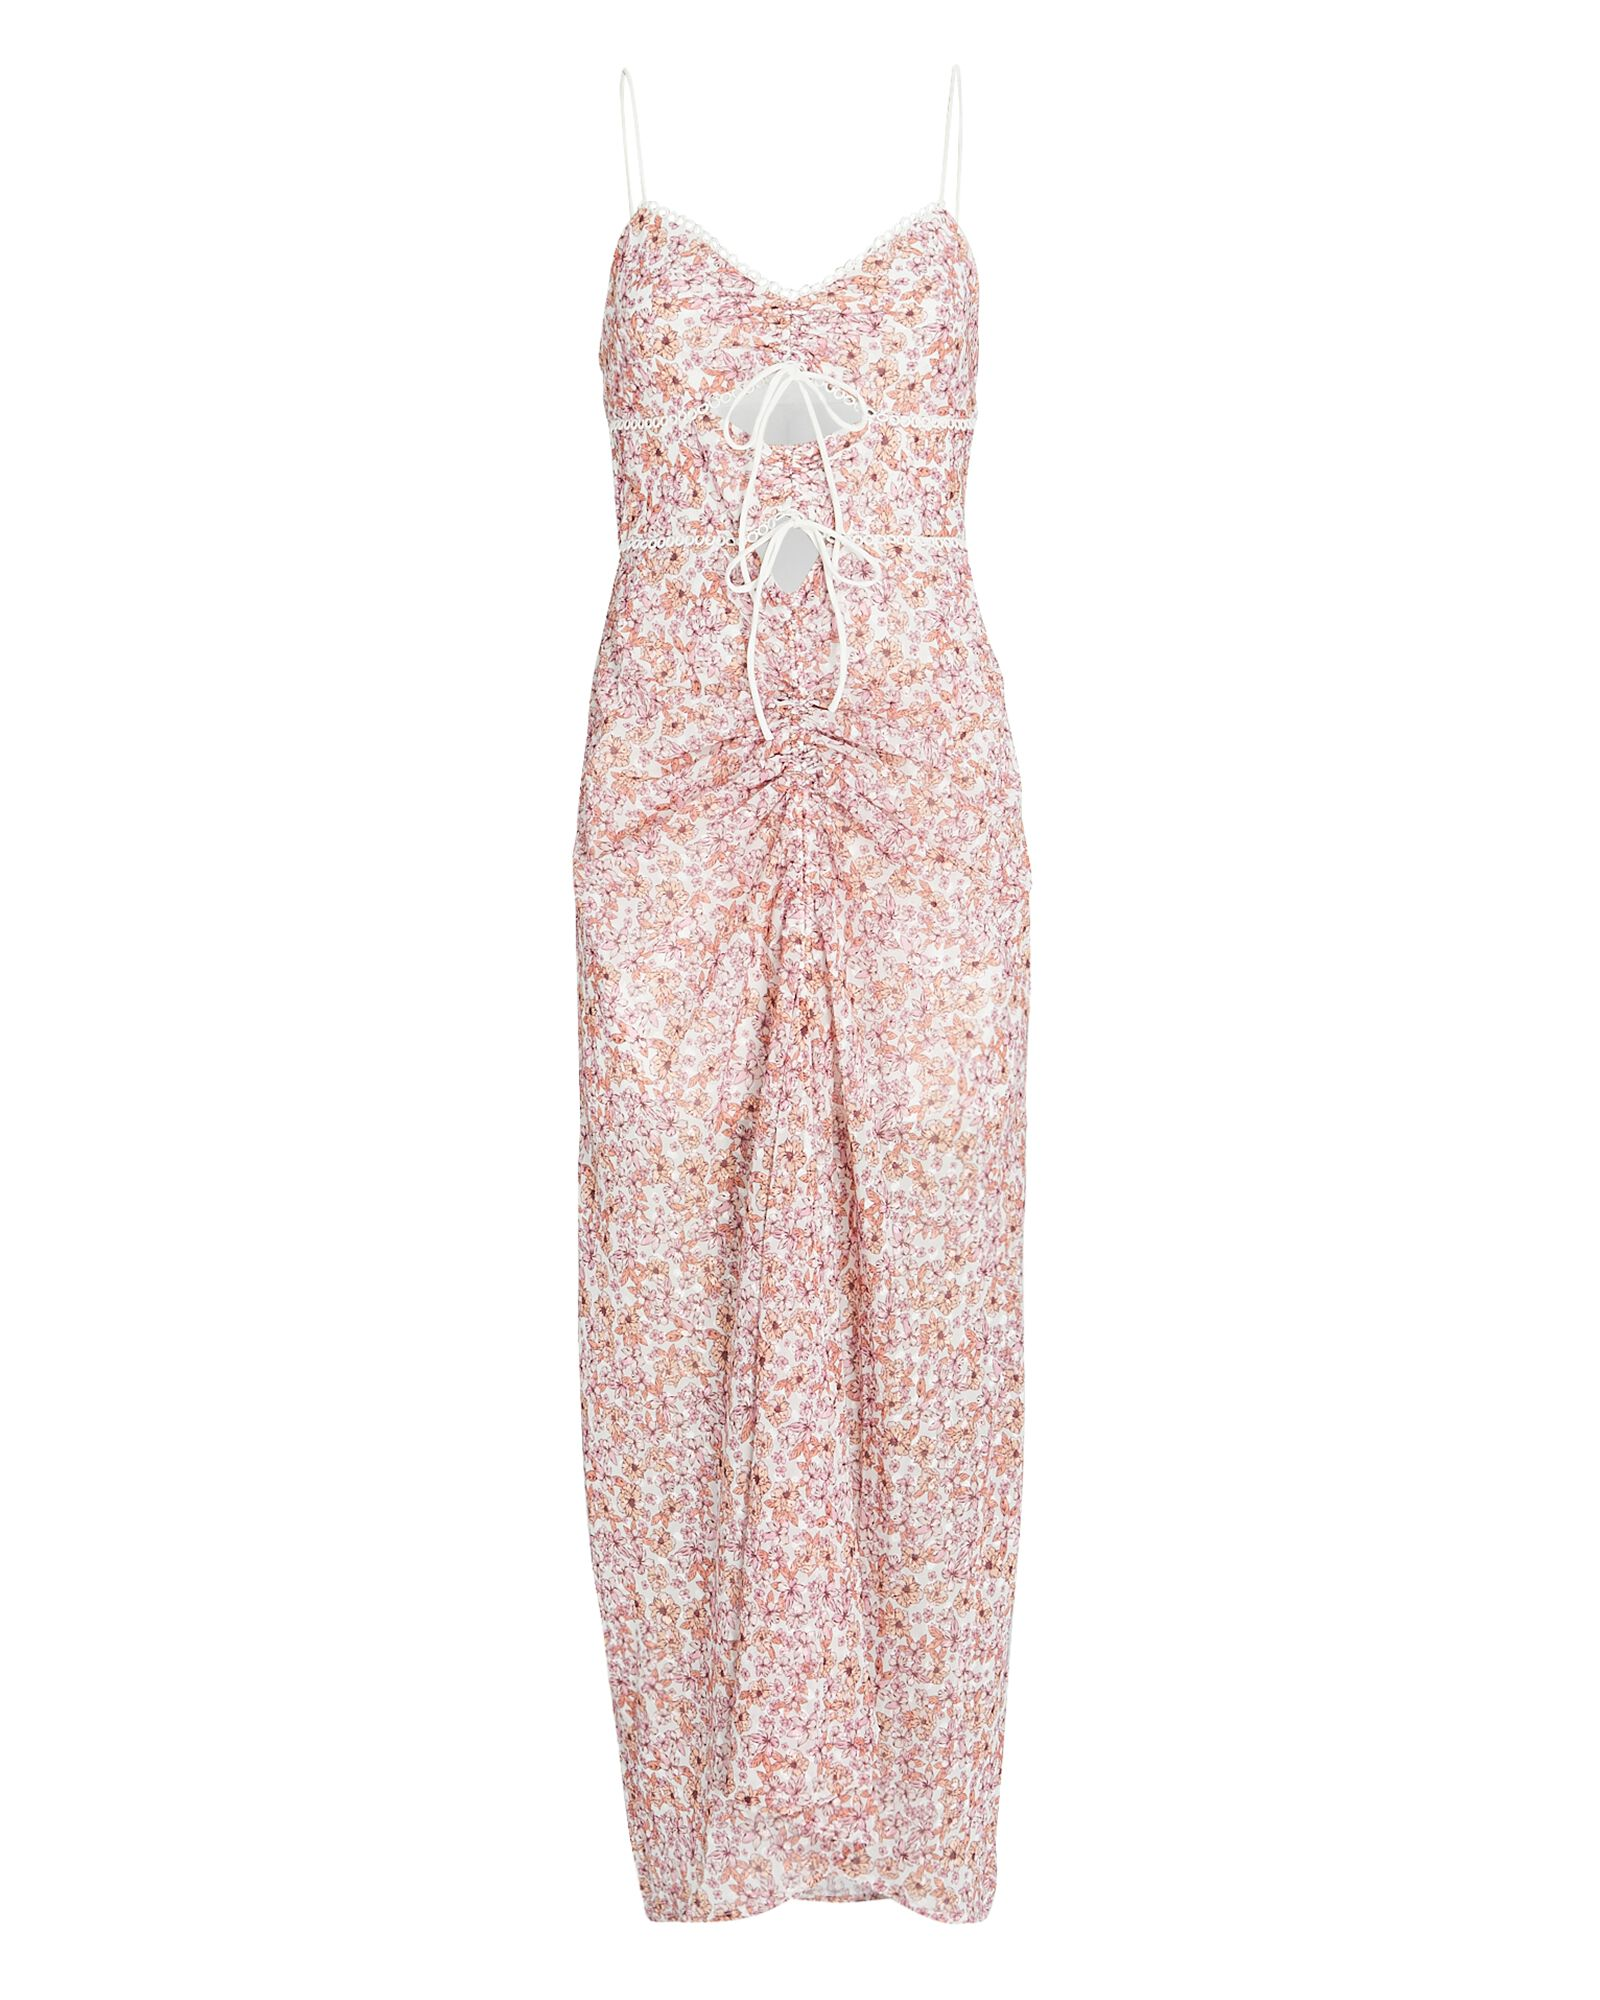 Angelina Floral Cut-Out Midi Dress, MULTI, hi-res